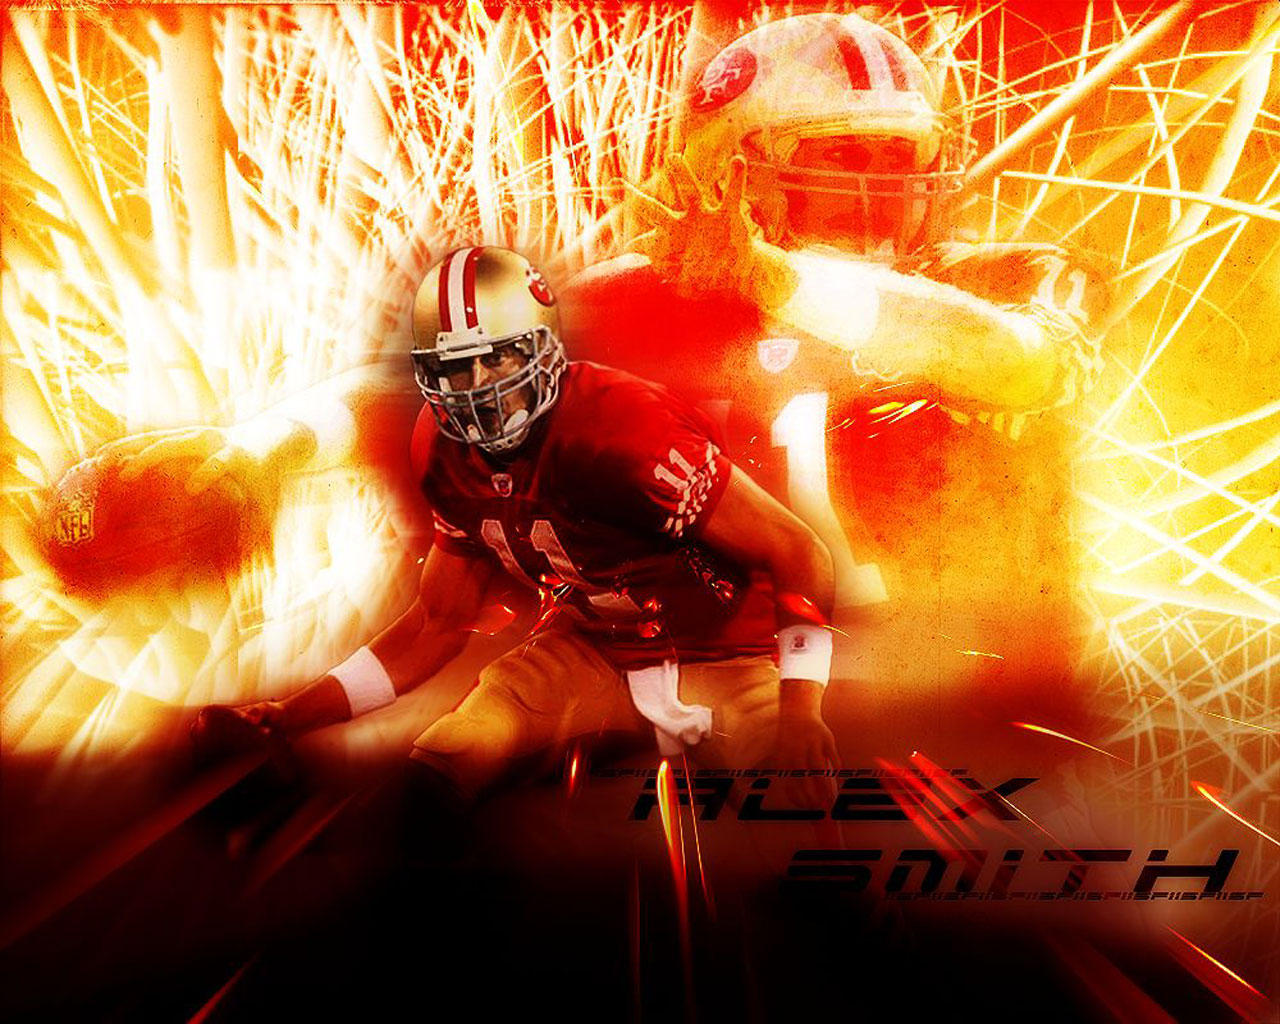 49ers Alex Smith Wallpaper in HD Wide High Definition Wallpapers For 1280x1024